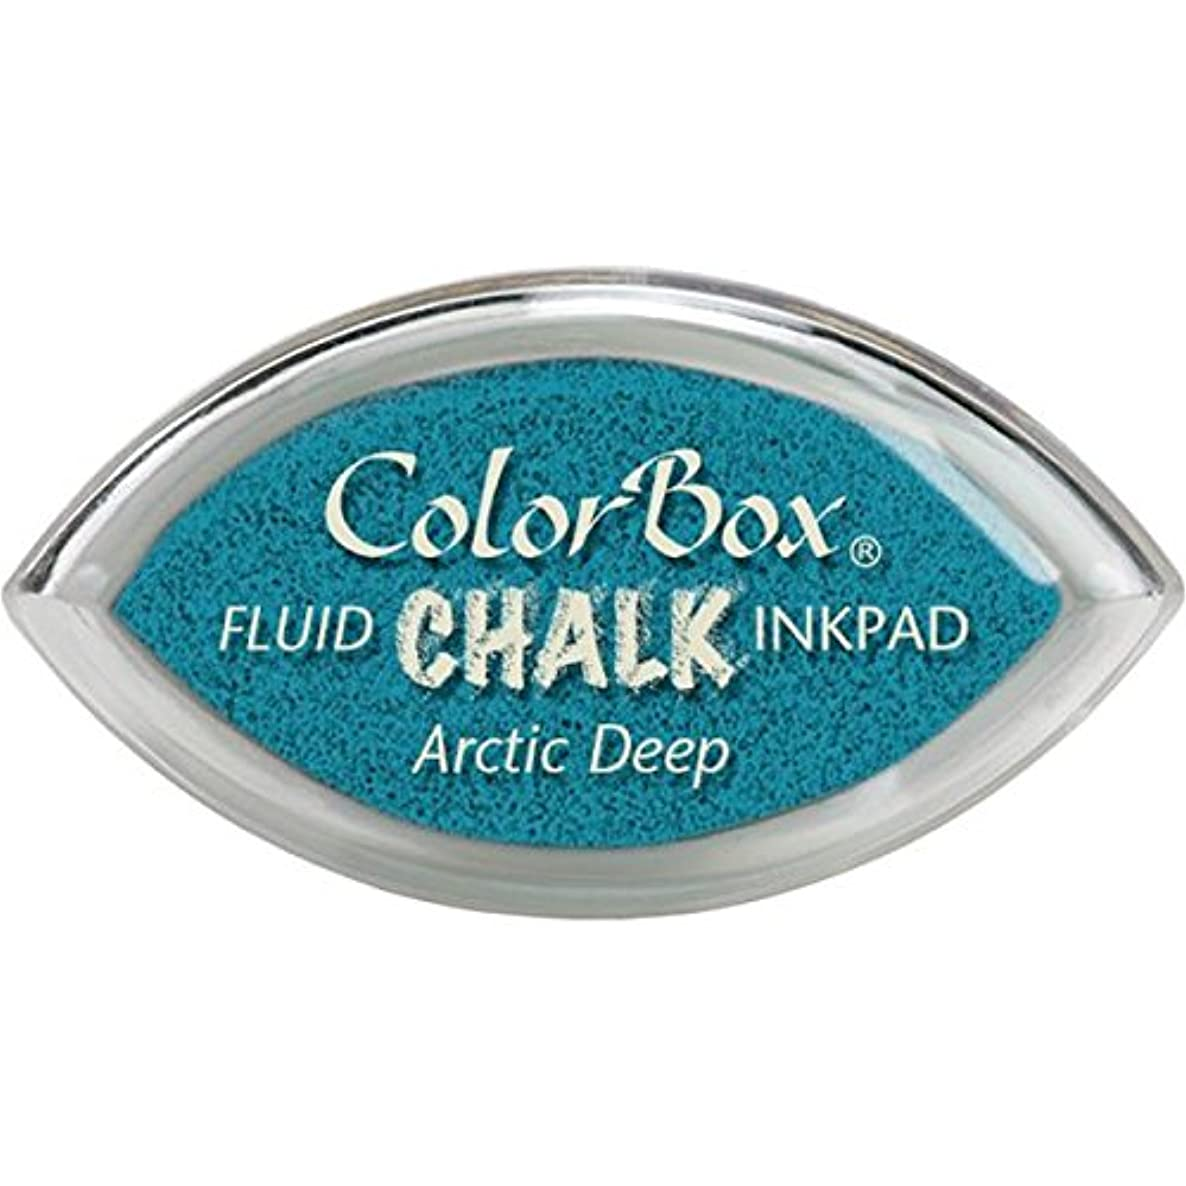 ColorBox Chalk Cat's Eye Ink Pads, Arctic Deep ylvzgad946